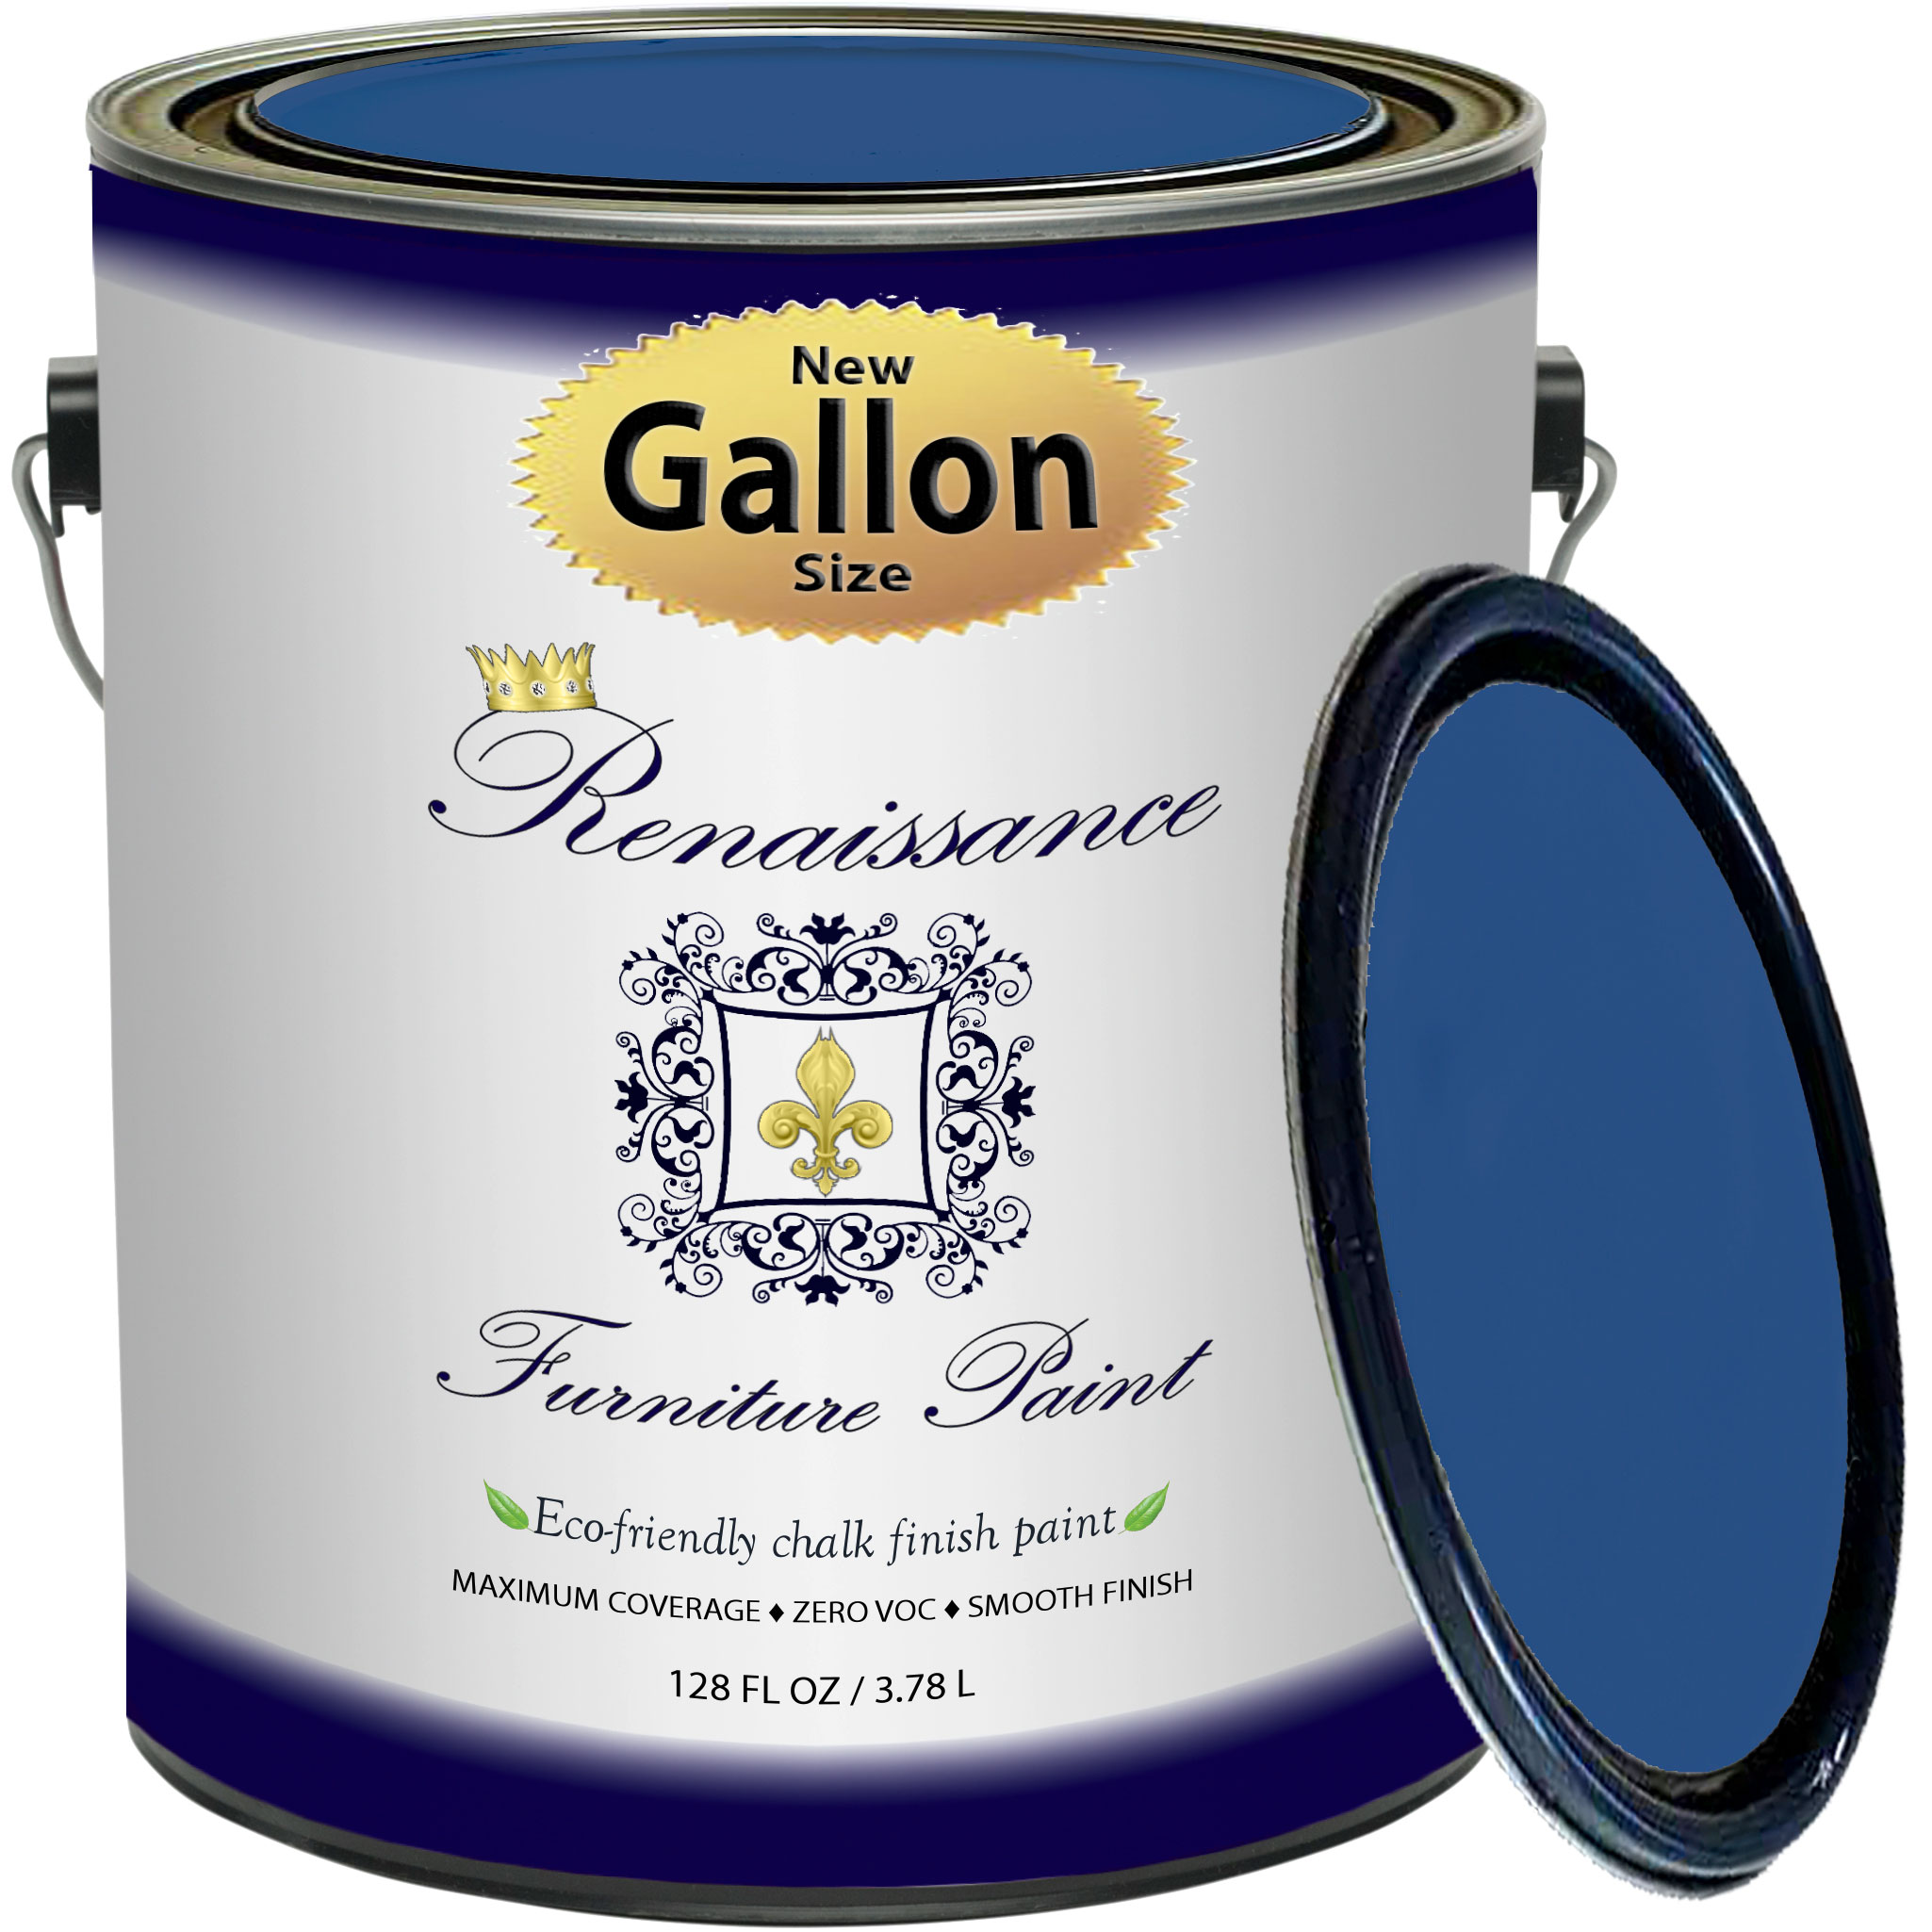 Renaissance Chalk Finish Paint - Ultramarine Gallon (128oz) - Chalk Furniture & Cabinet Paint - Non Toxic, Eco-Friendly, Superior Coverage